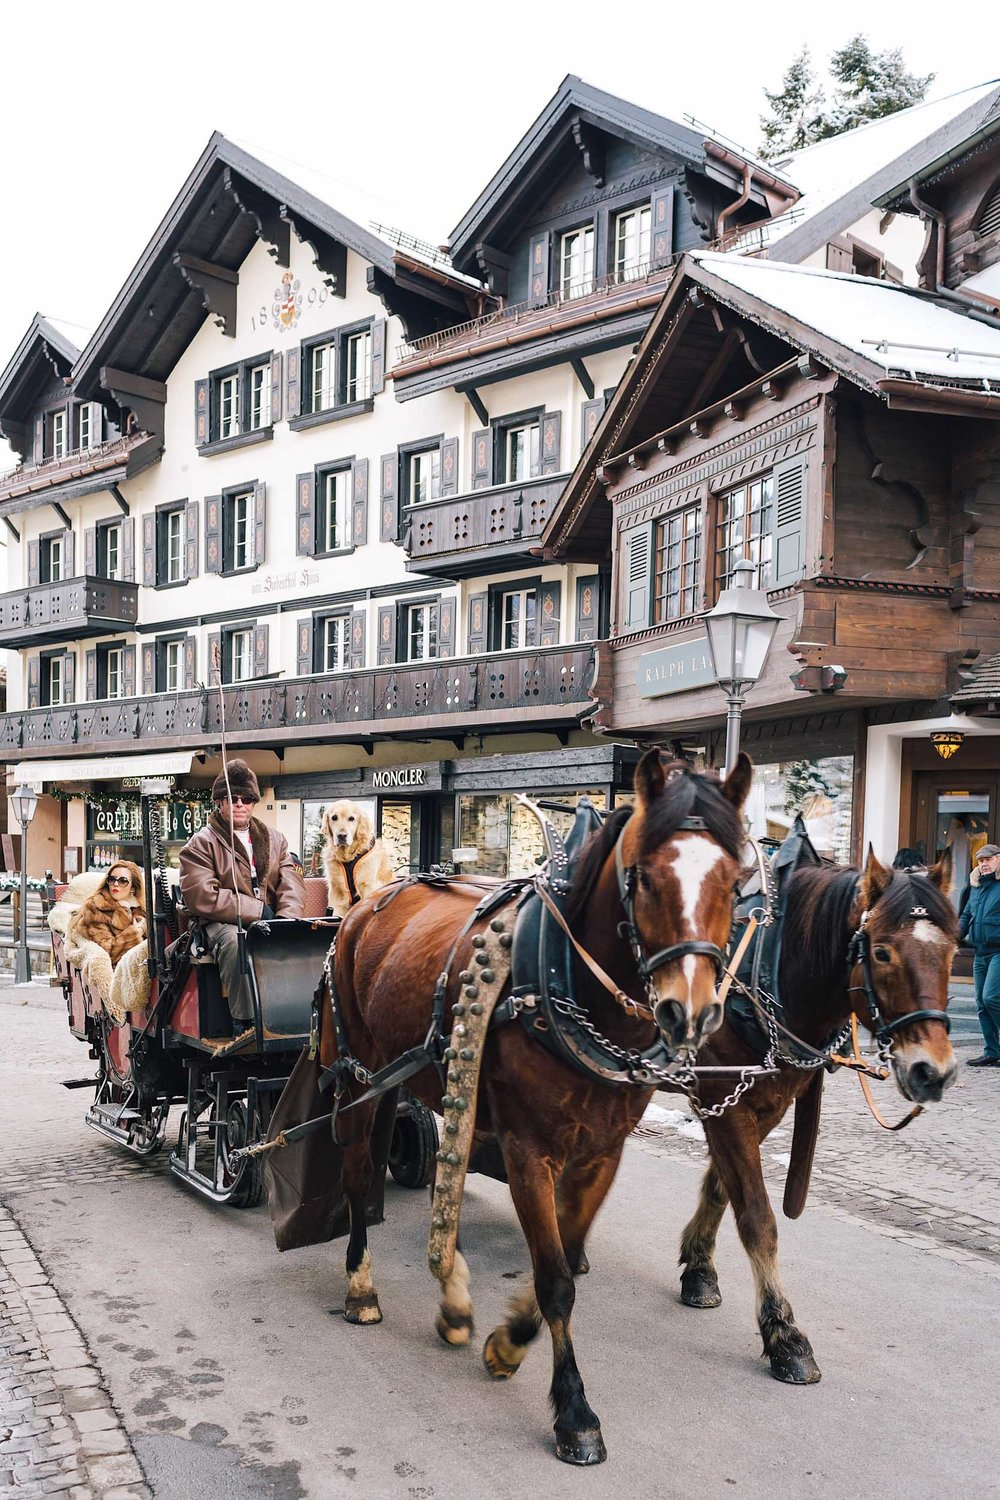 Gstaad is an upscale resort town in southwestern Switzerland in the canton of Bern